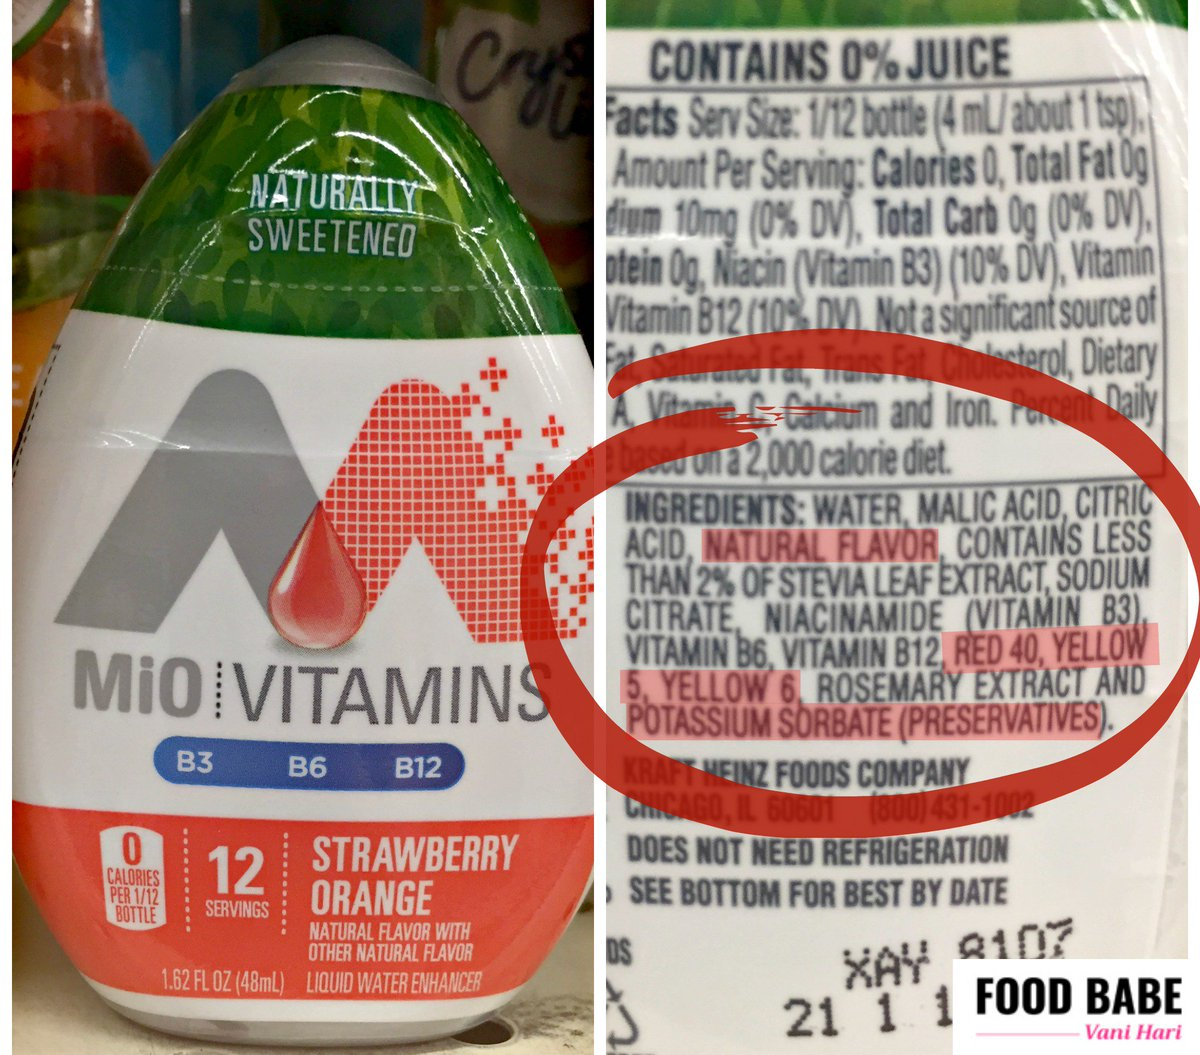 Food Babe On Twitter   This Water Enhancer By Mio Is Artificially